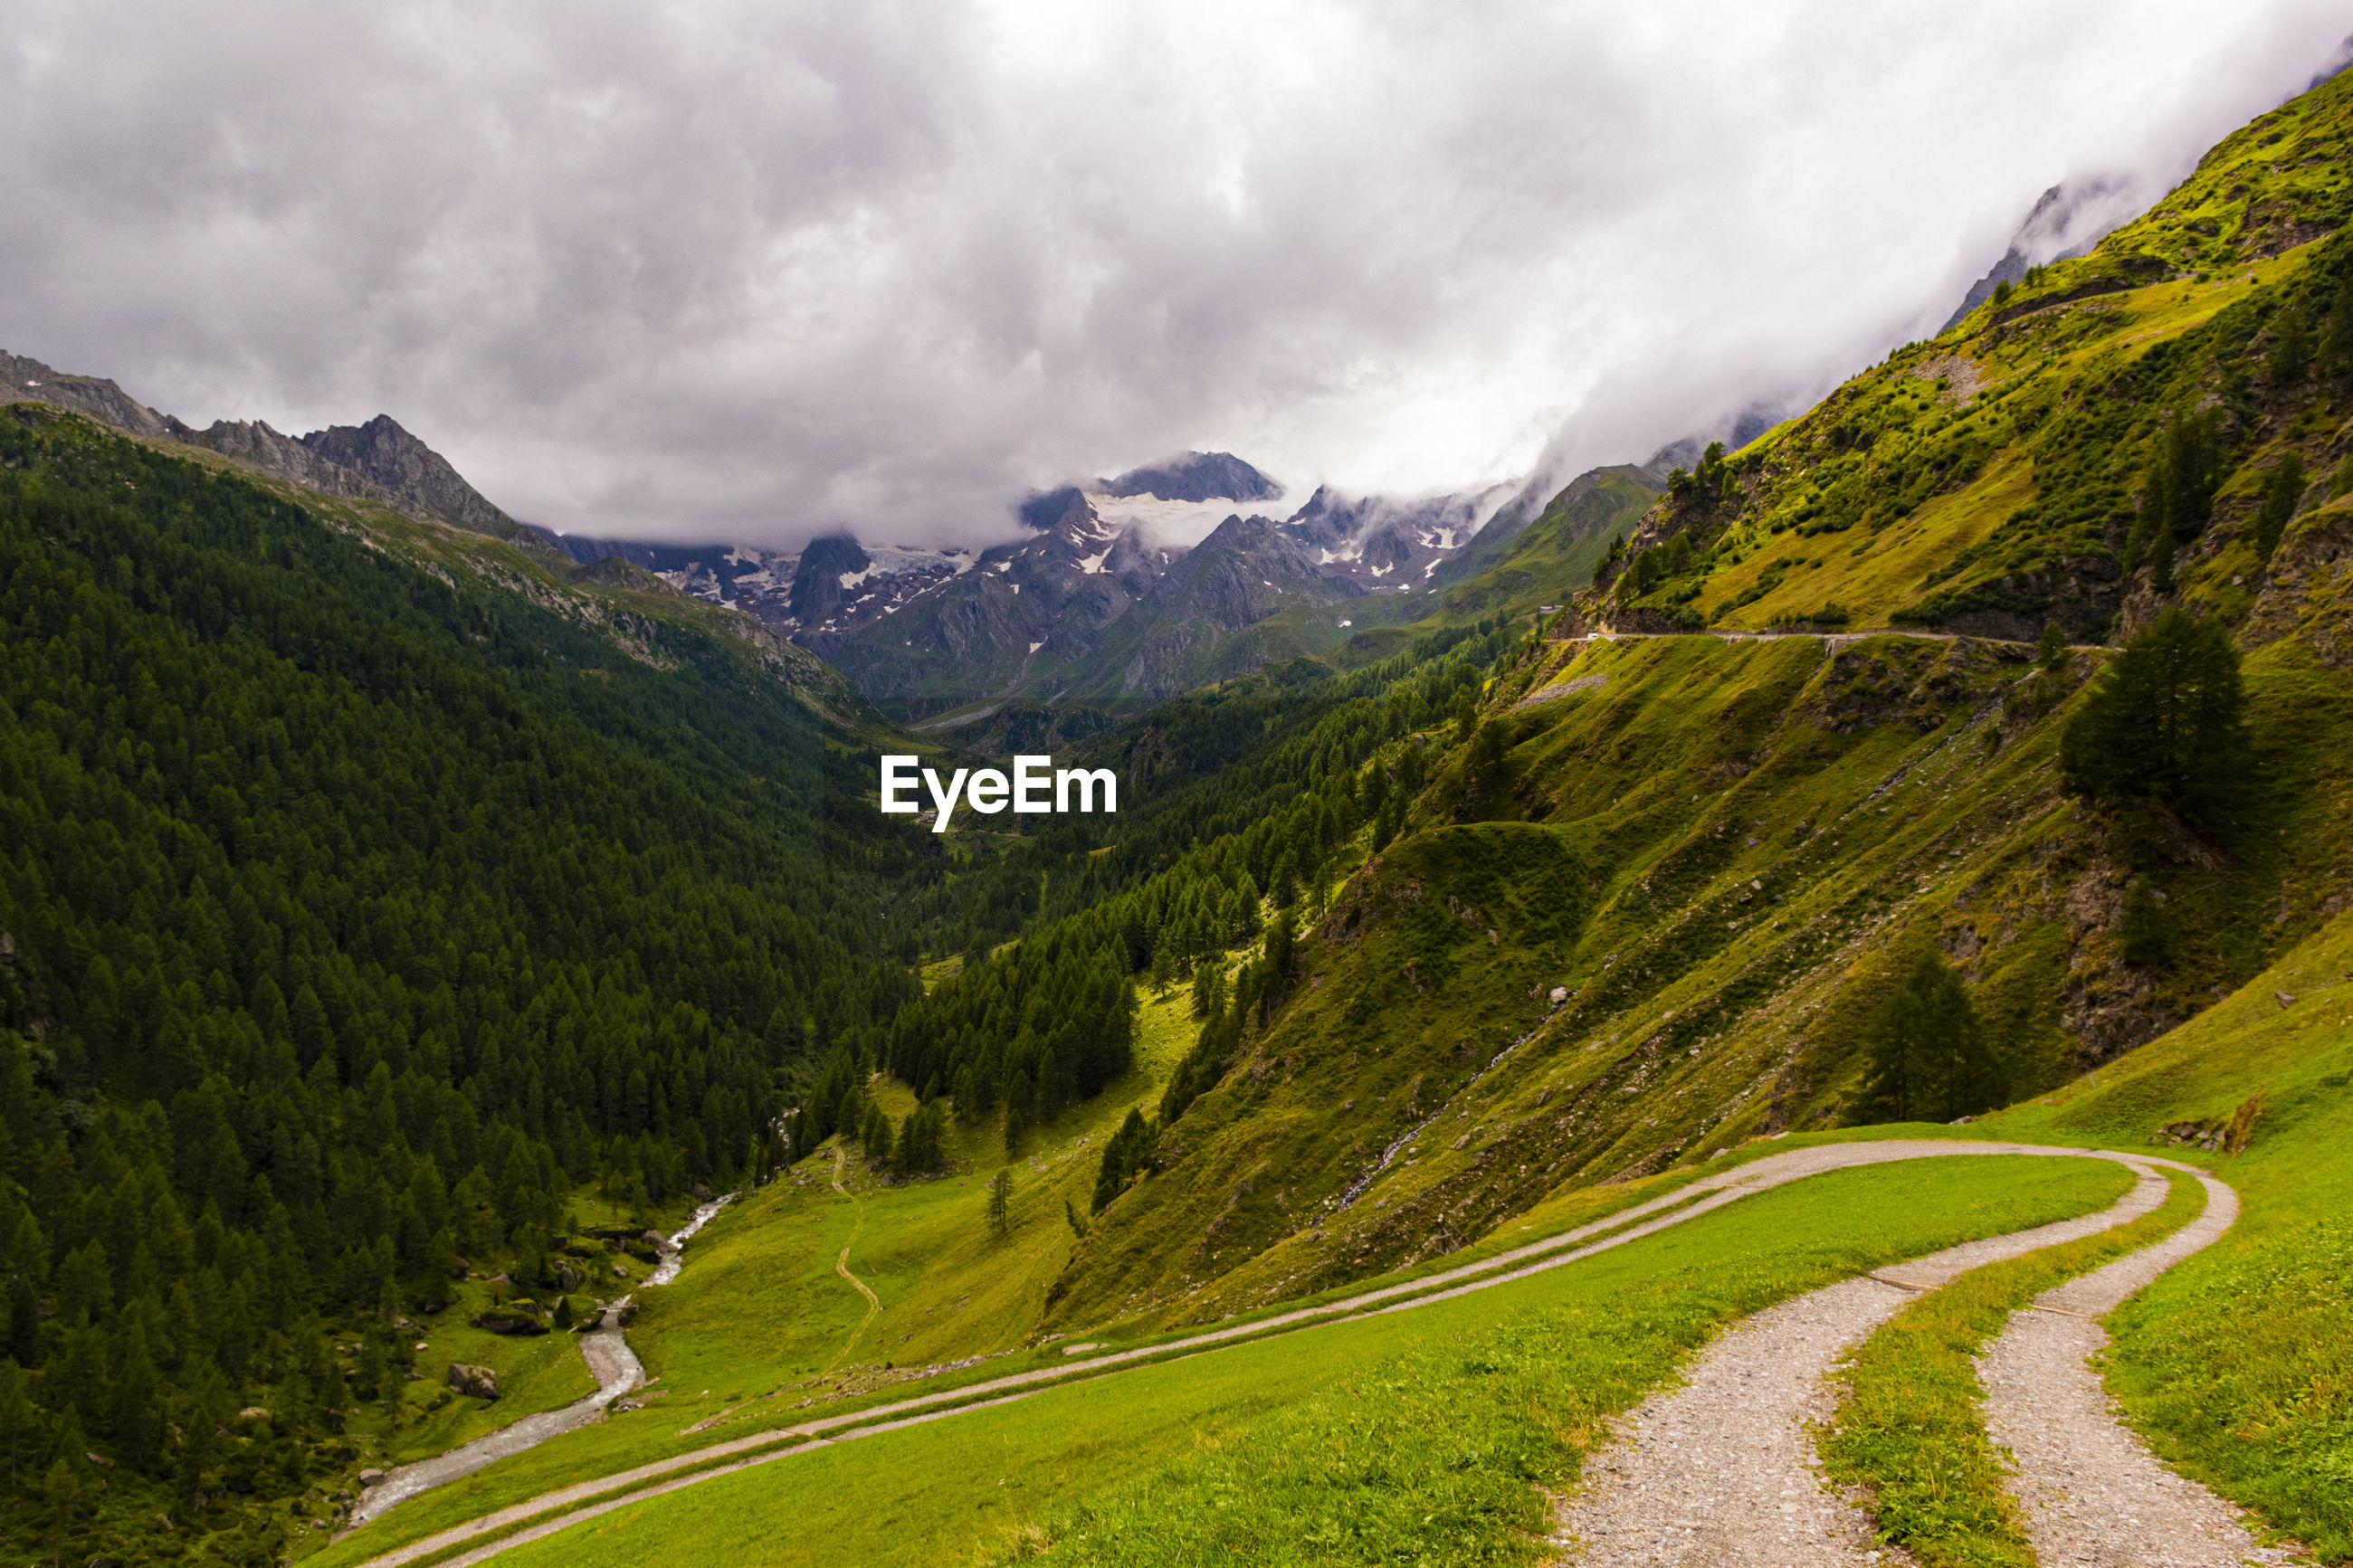 Scenic view of road amidst mountains against sky